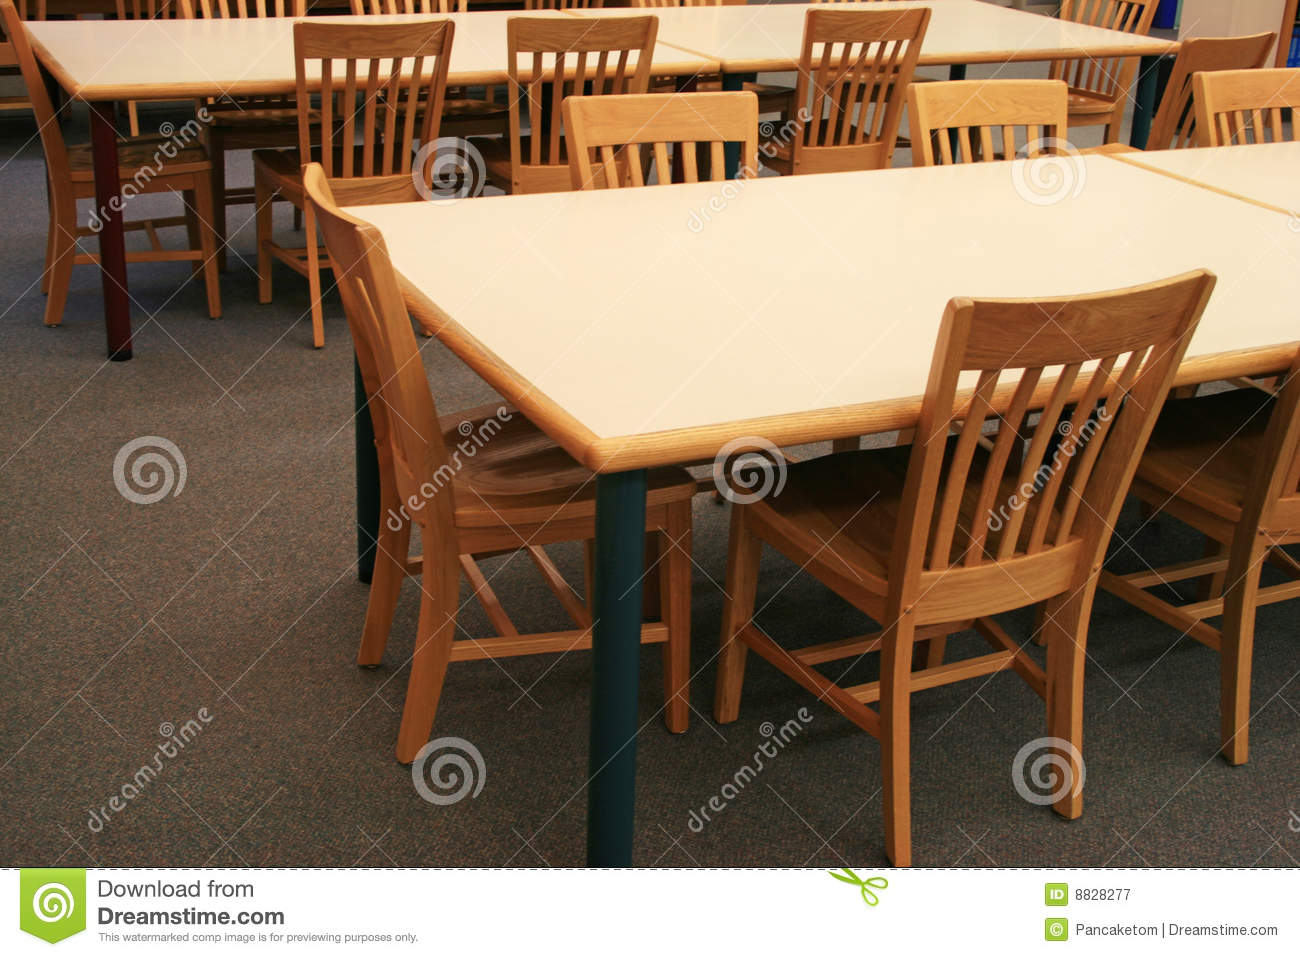 Wooden kitchen chair free stock photo public domain pictures - Library Tables And Chairs